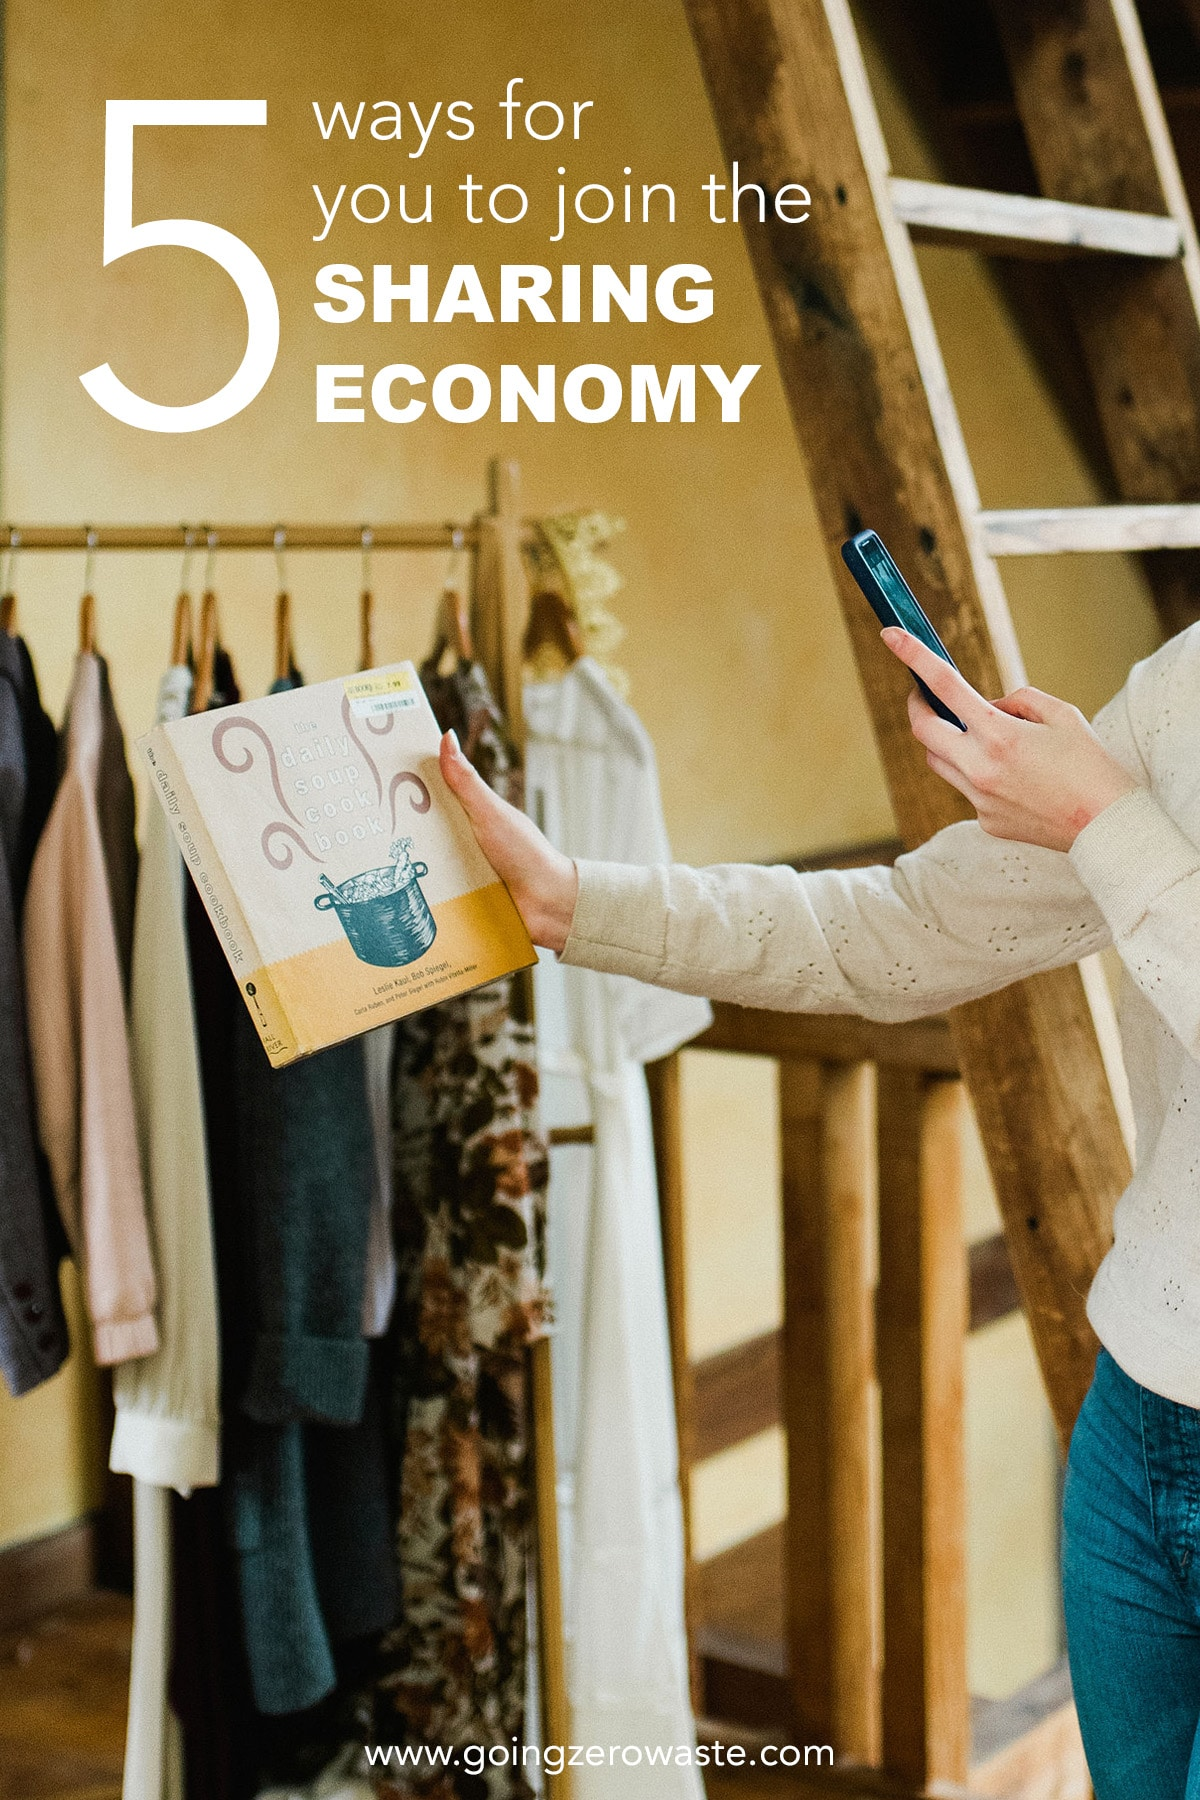 5 Ways for You to Join the Sharing Economy